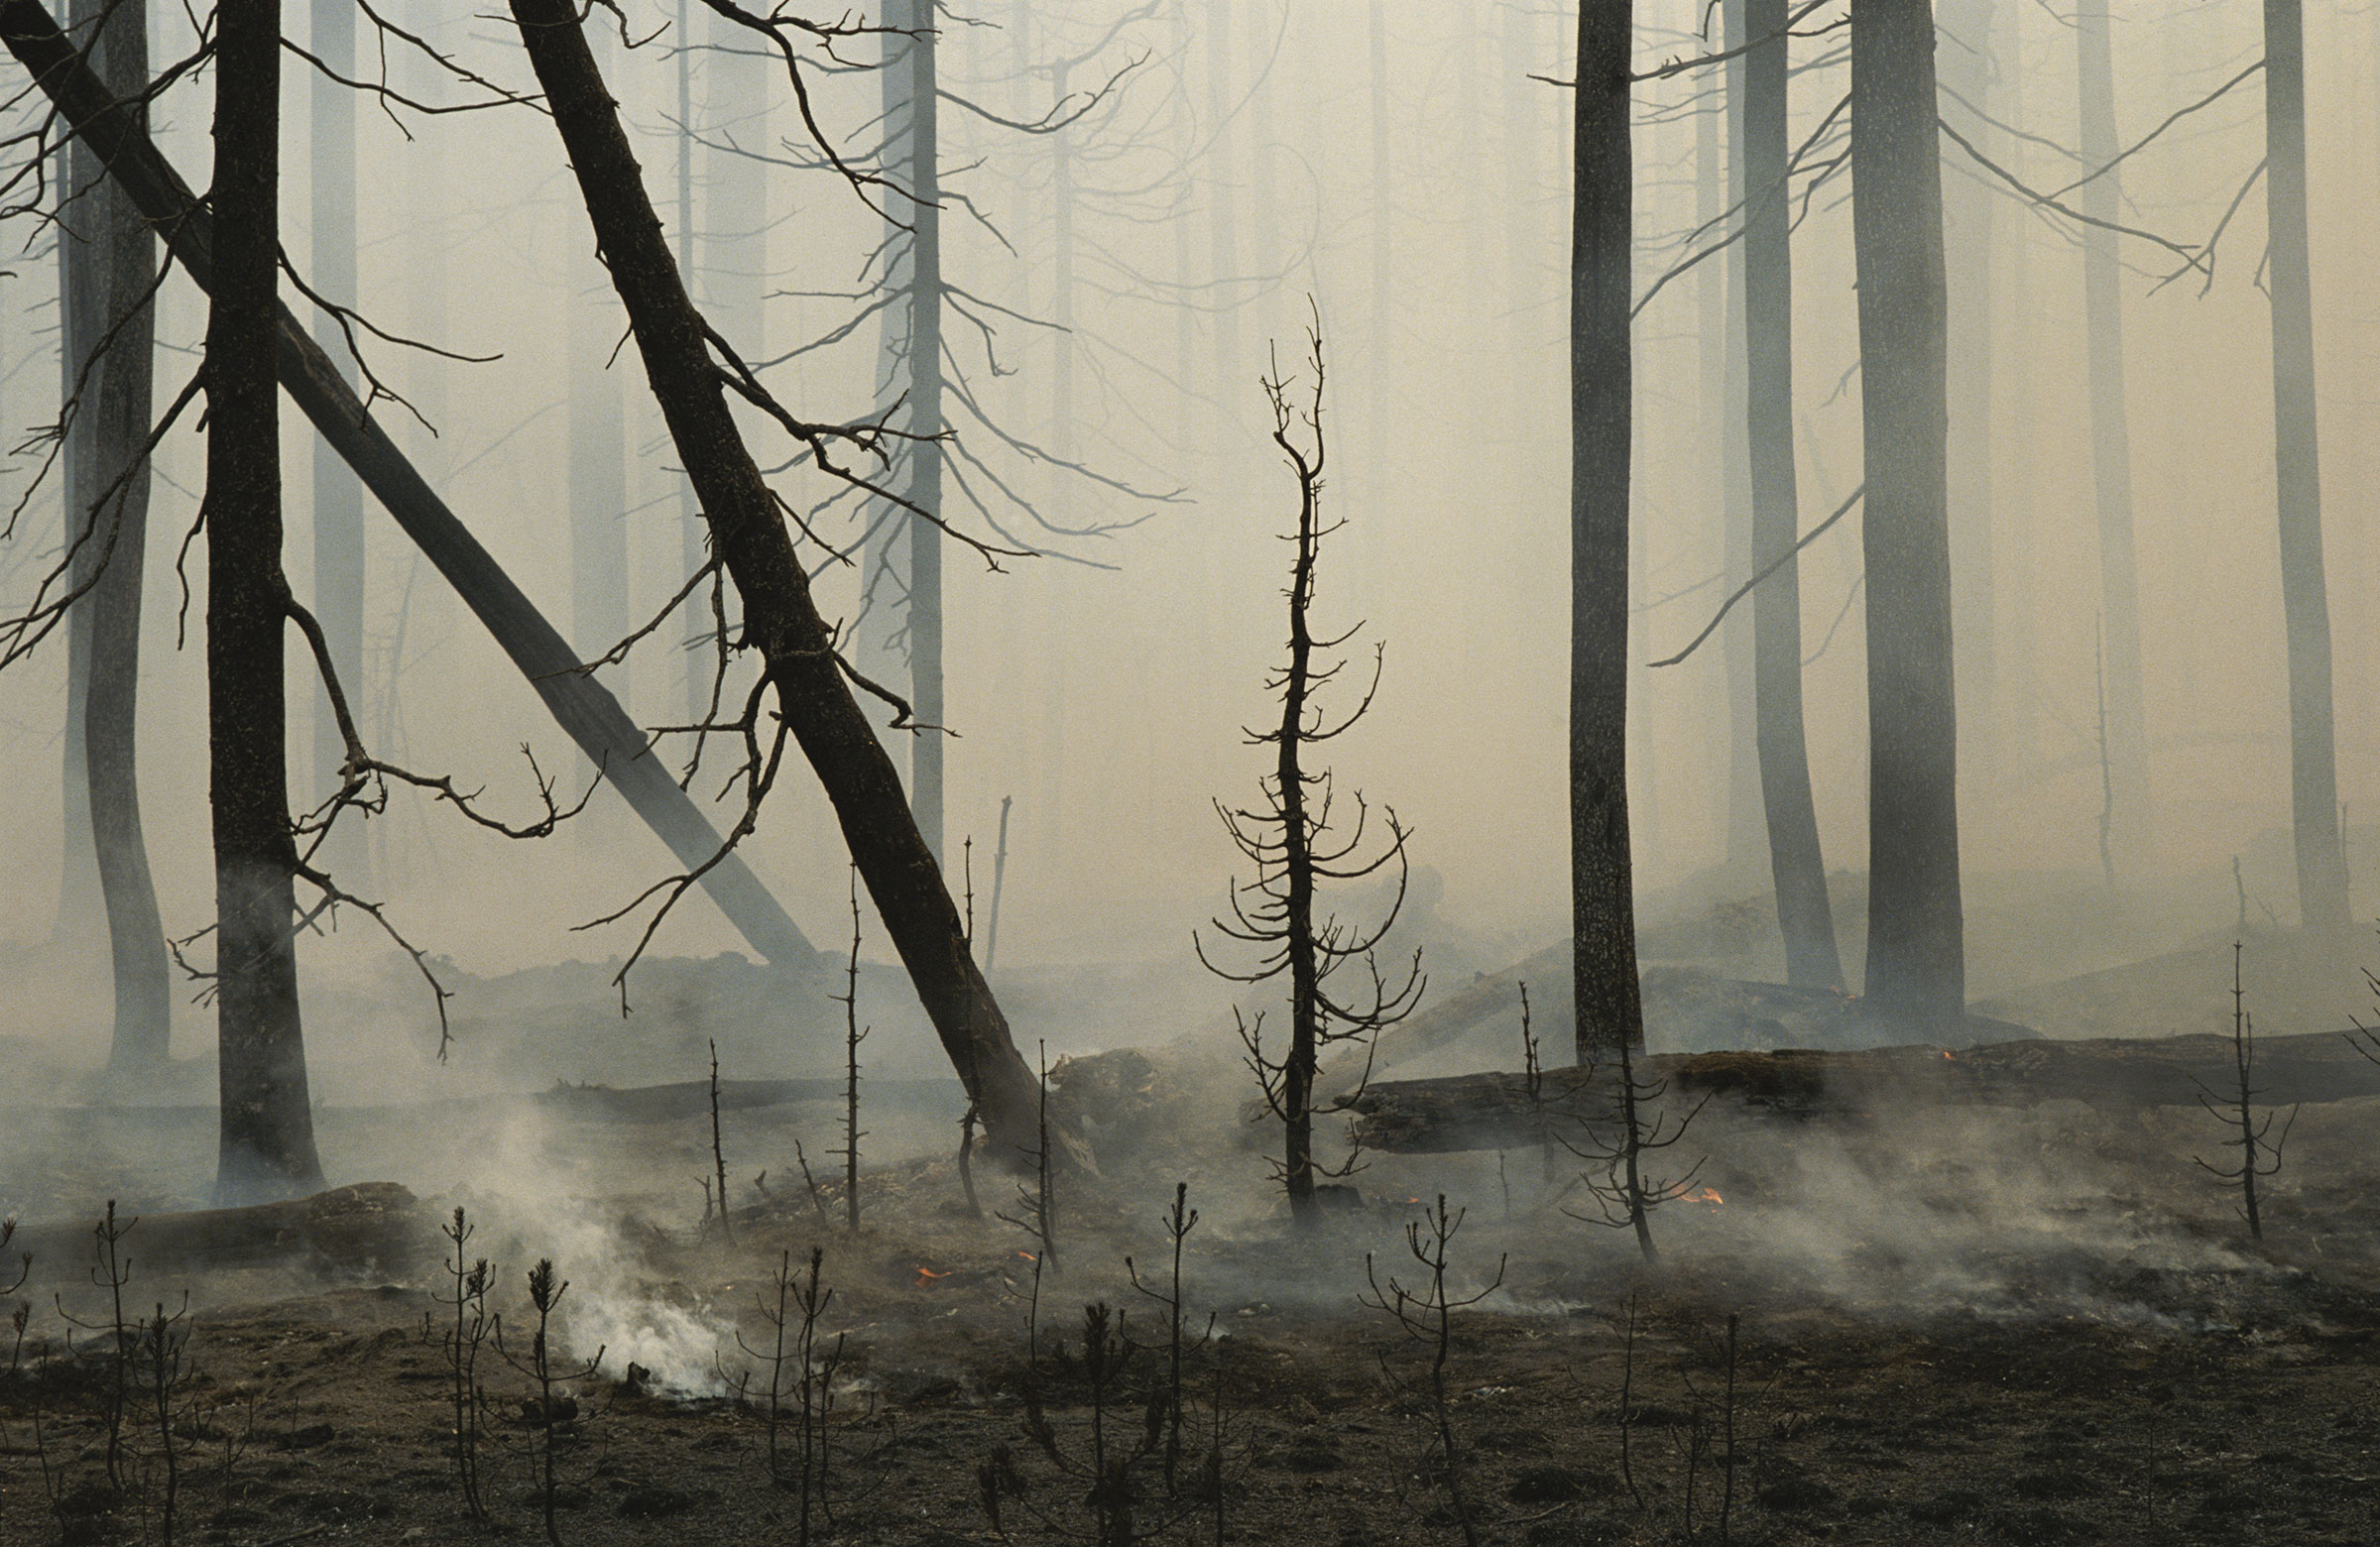 A lodgepole pine forest smolders following a fire in Yellowstone National Park. Raymond Gehman/National Geographic Creative